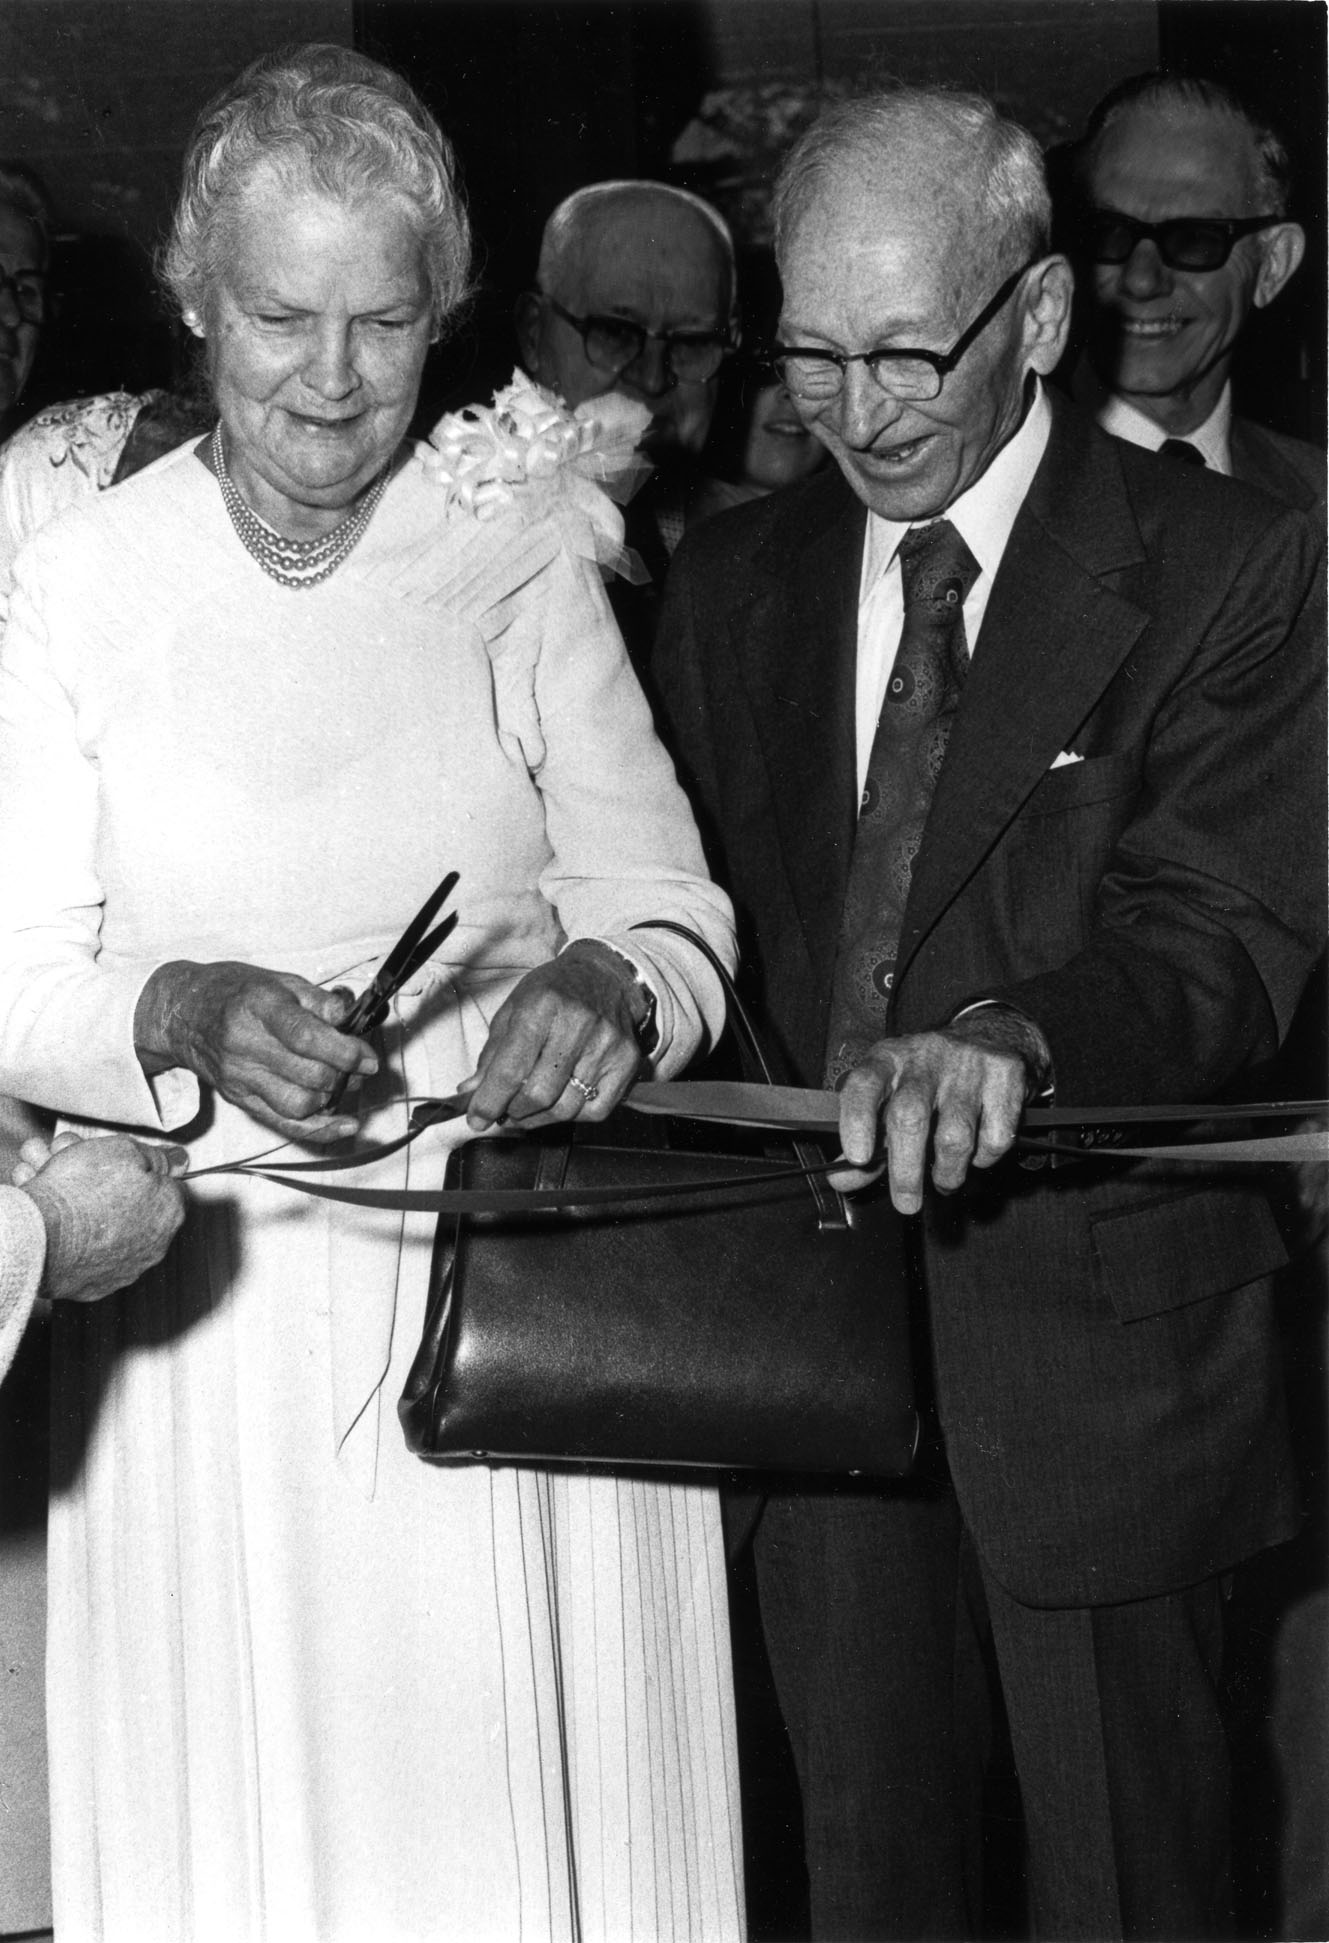 Dr. and Mrs Blackwell at the ribbon-cutting ceremony for the building named in their honor, Blackwell Hall, 1978.